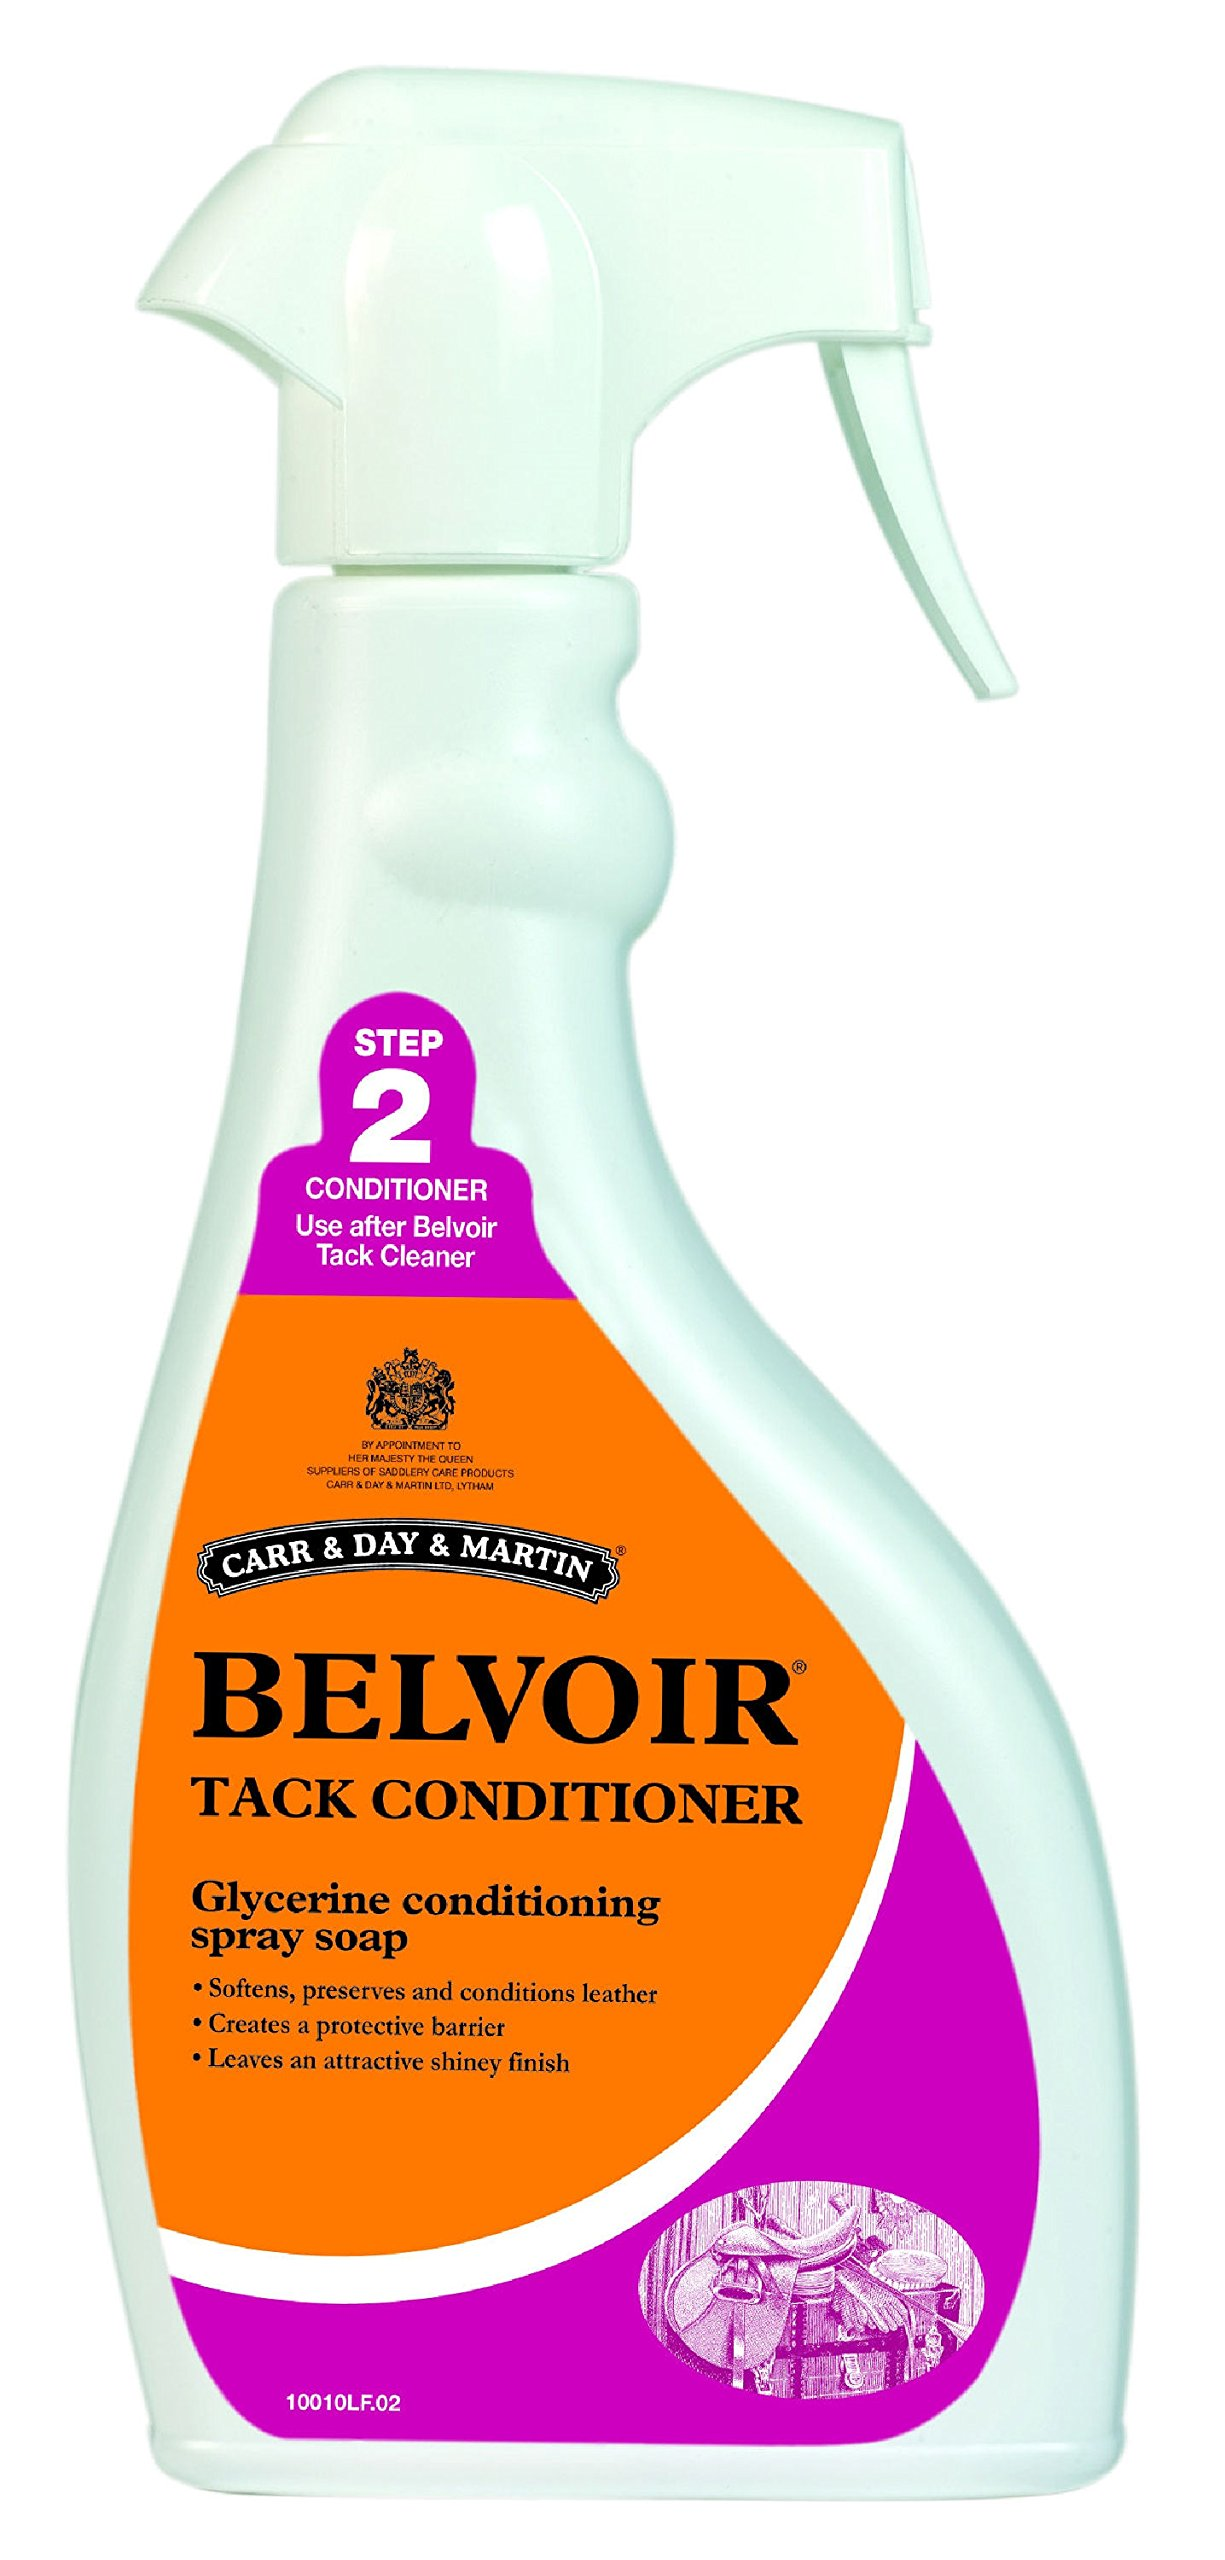 Carr and Day and Martin Belvoir Tack Conditioner Spray 500 ml by Carr and Day and Martin